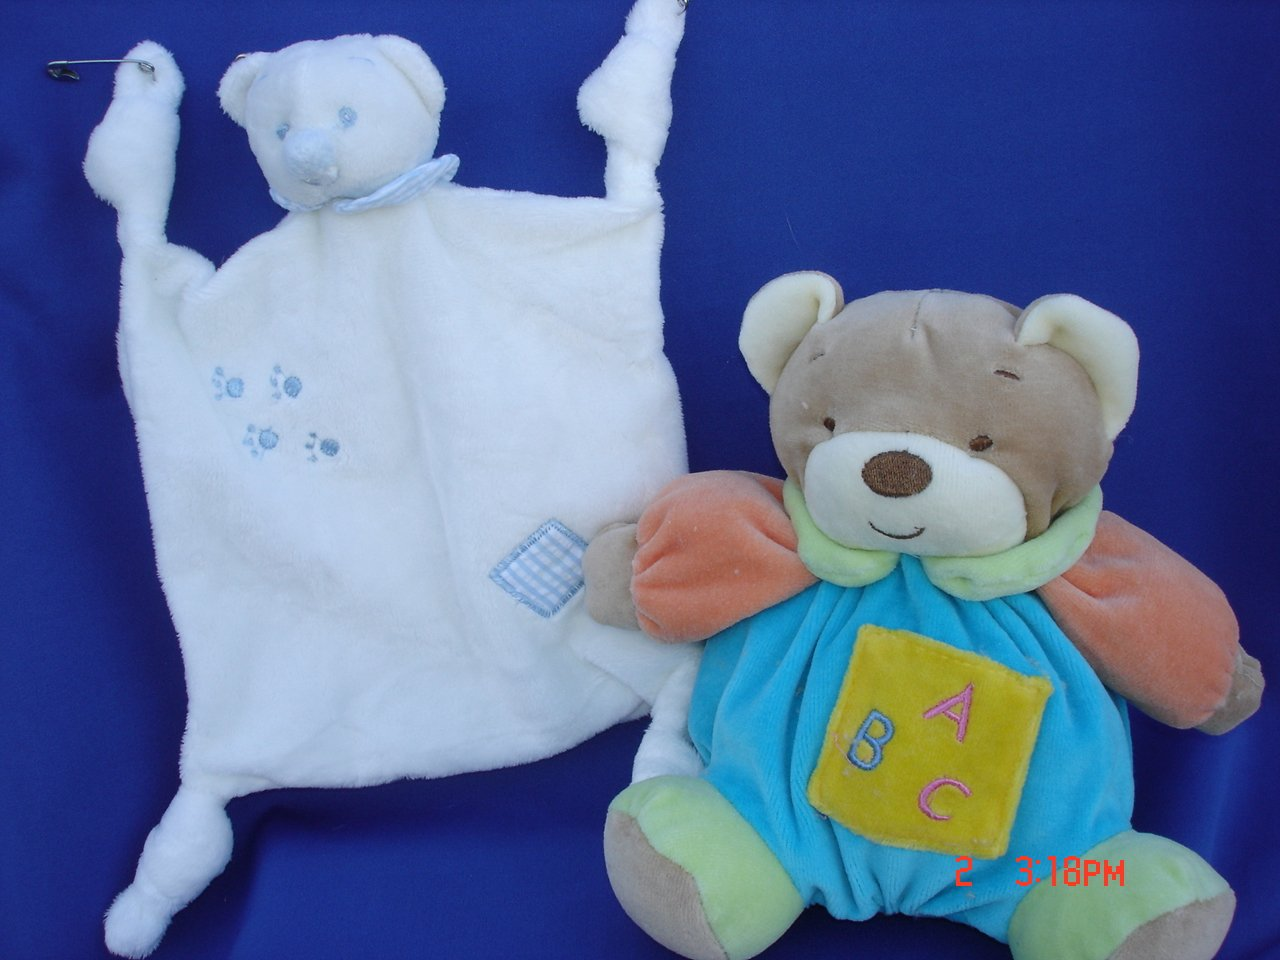 Ultra Soft Baby Blue Teddy Bear Plush Blankie 7.5''x7.5'' Teething Blanket Lovie and My First Baby Blue Plush Teddy Bear Stuffed Animal Toy Rattle 7'' Tall, 2 Pcs Set